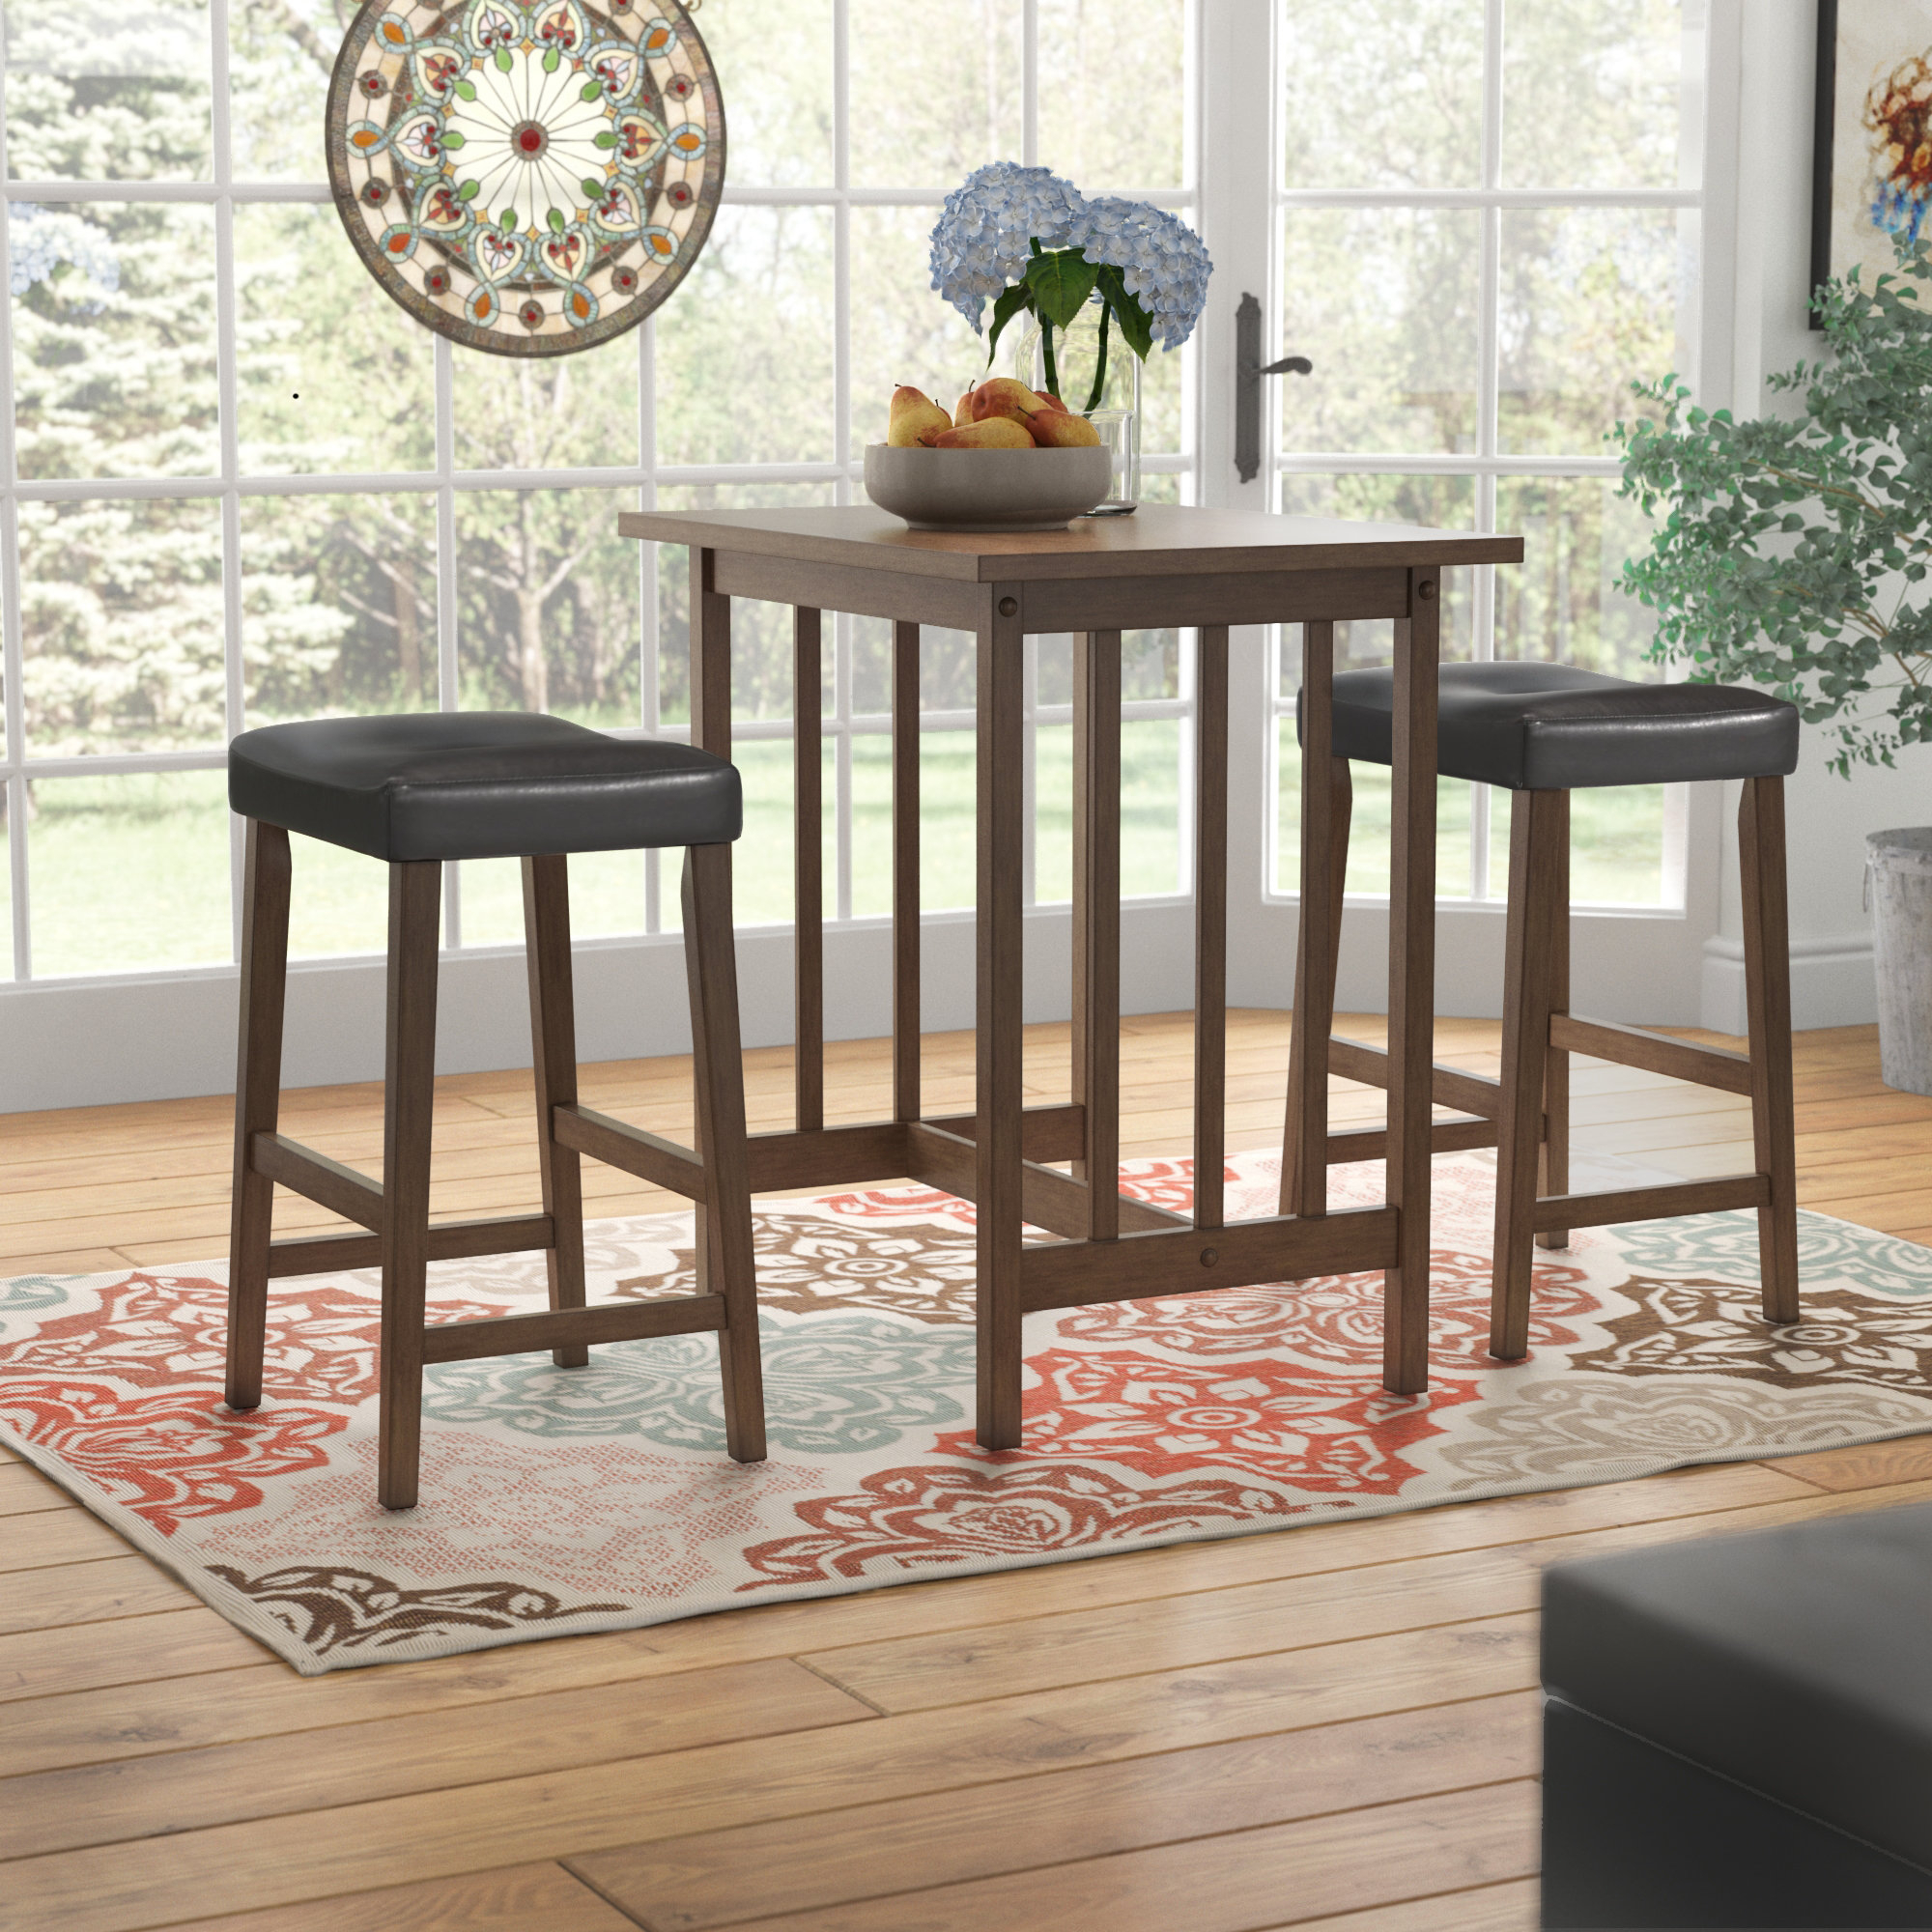 Mitzel 3 Piece Dining Sets Inside Best And Newest Red Barrel Studio Hood Canal 3 Piece Dining Set & Reviews (#5 of 20)